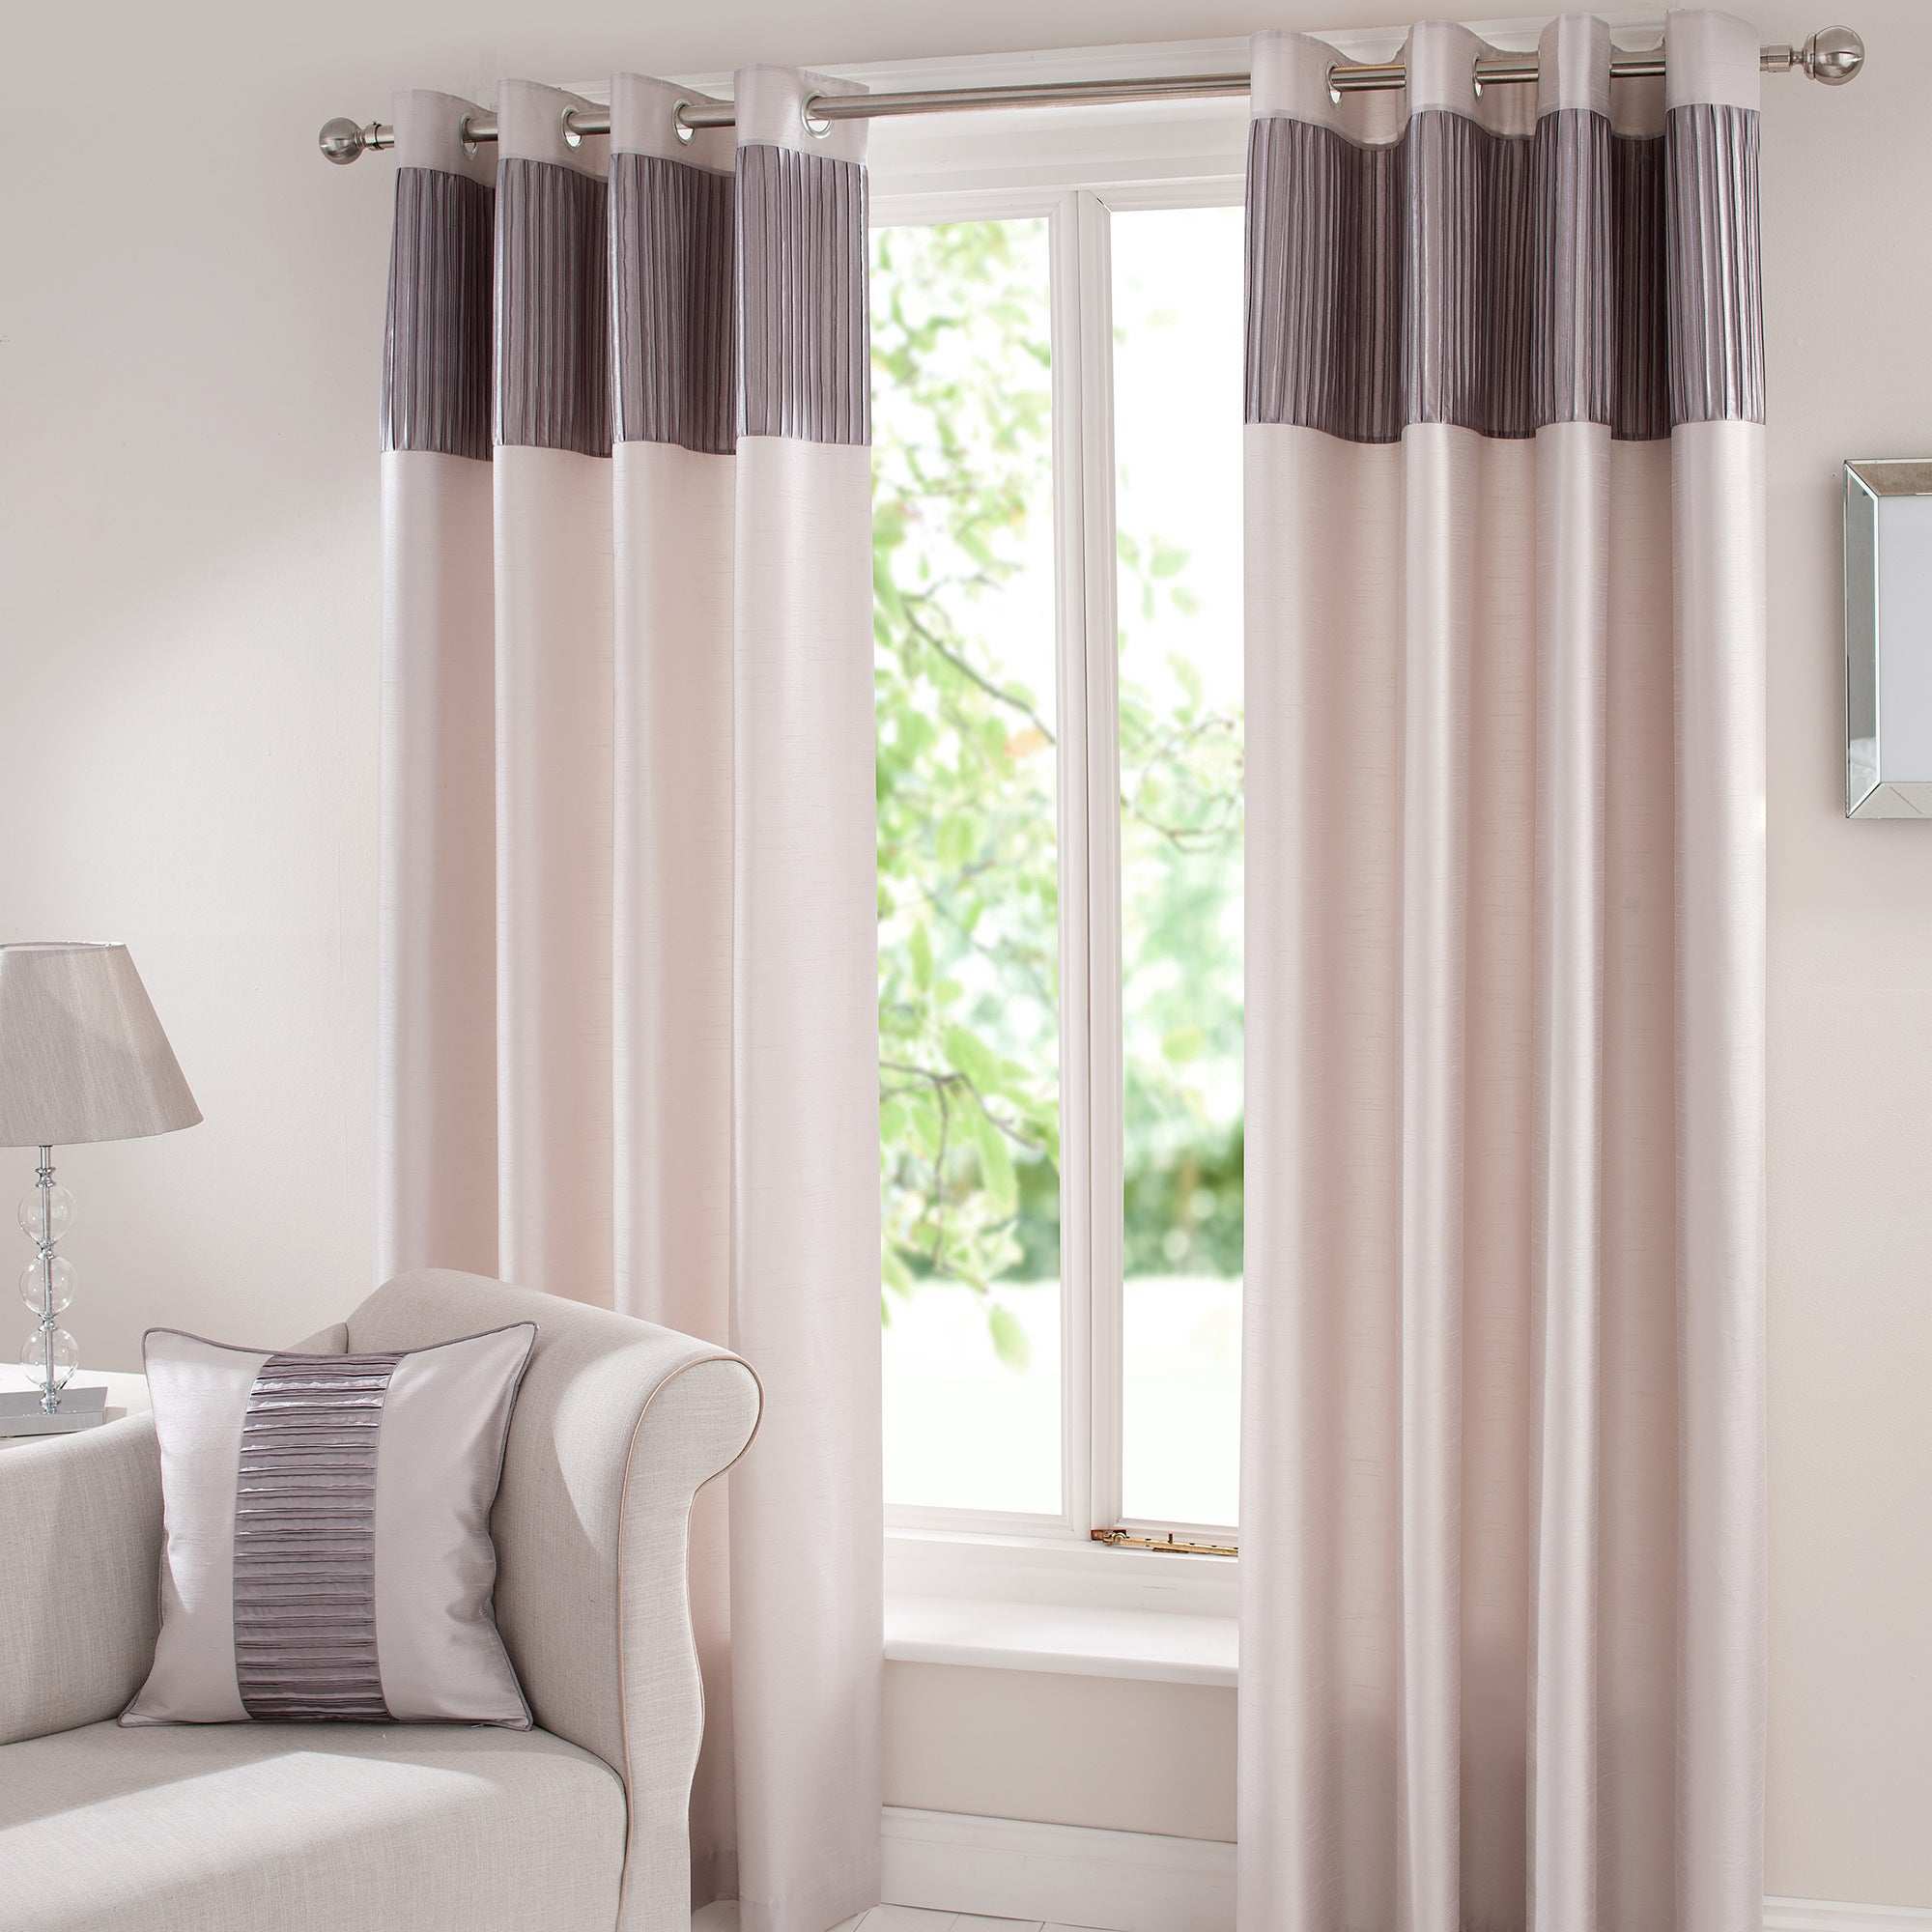 Silver Montreal Lined Eyelet Curtains